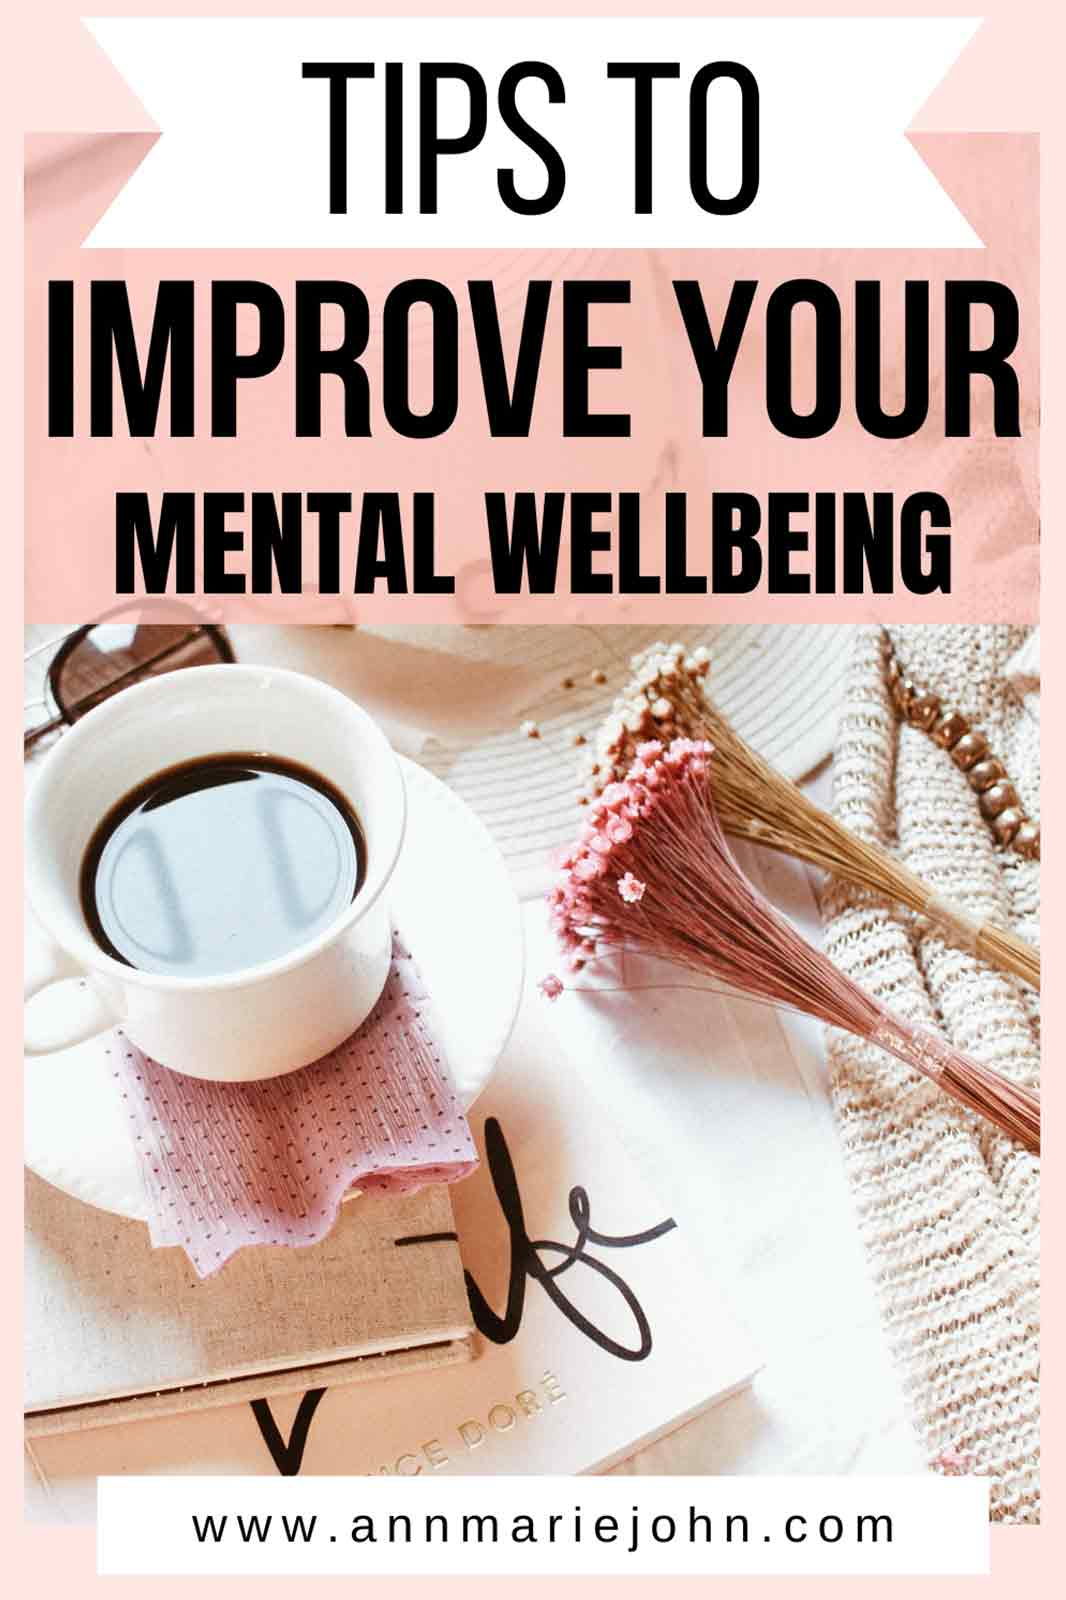 Tips To Improve Your Mental Wellbeing